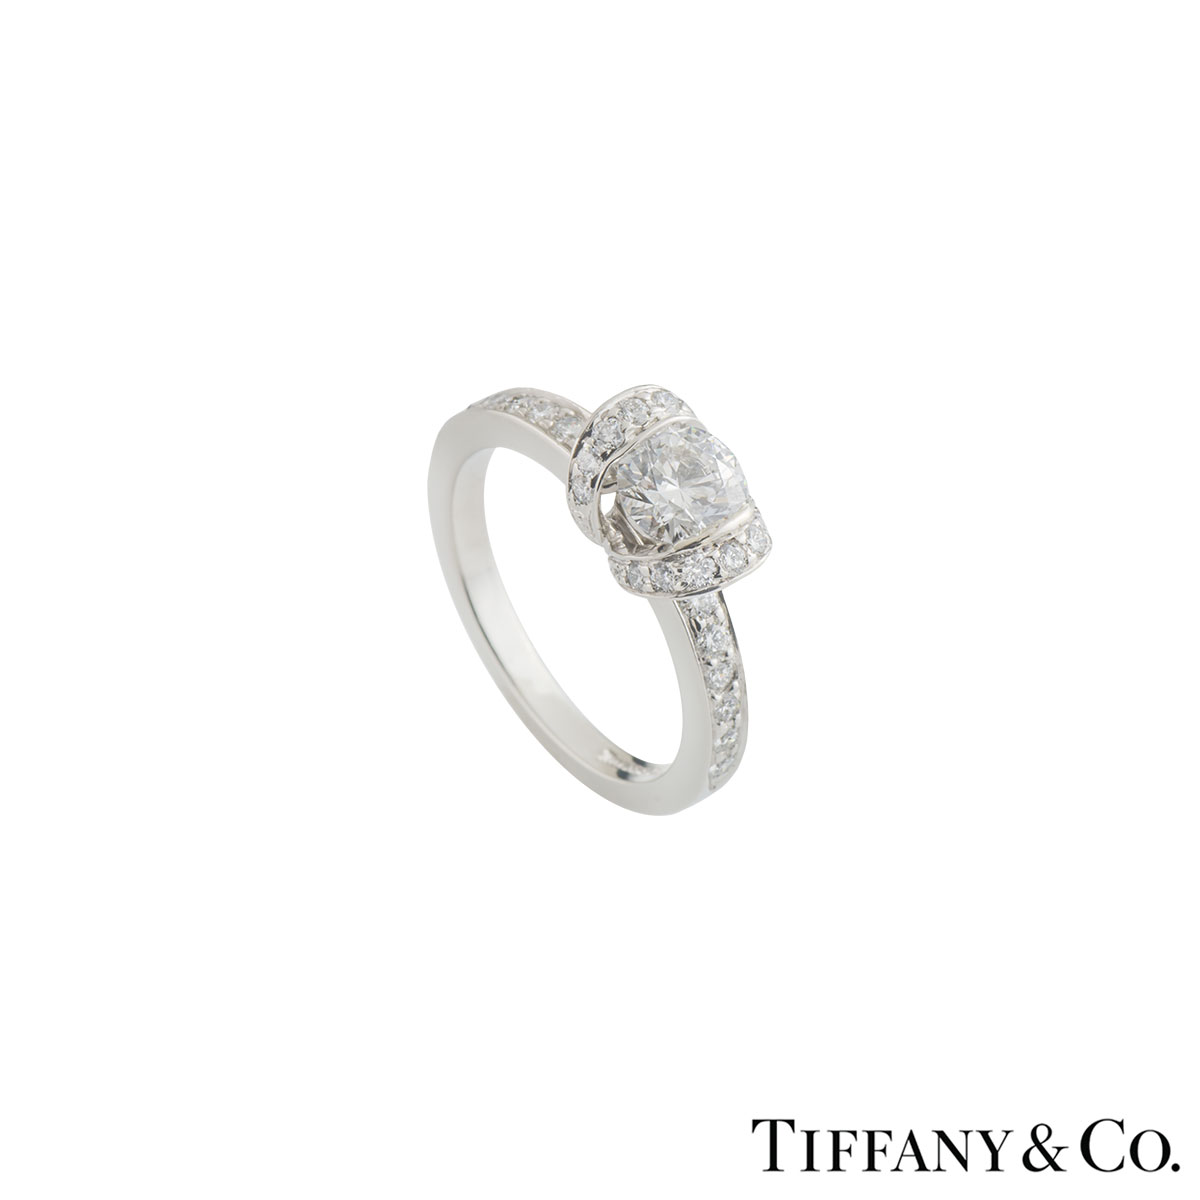 Tiffany & Co. Platinum Diamond Ribbon Ring 0.51ct D/VVS2